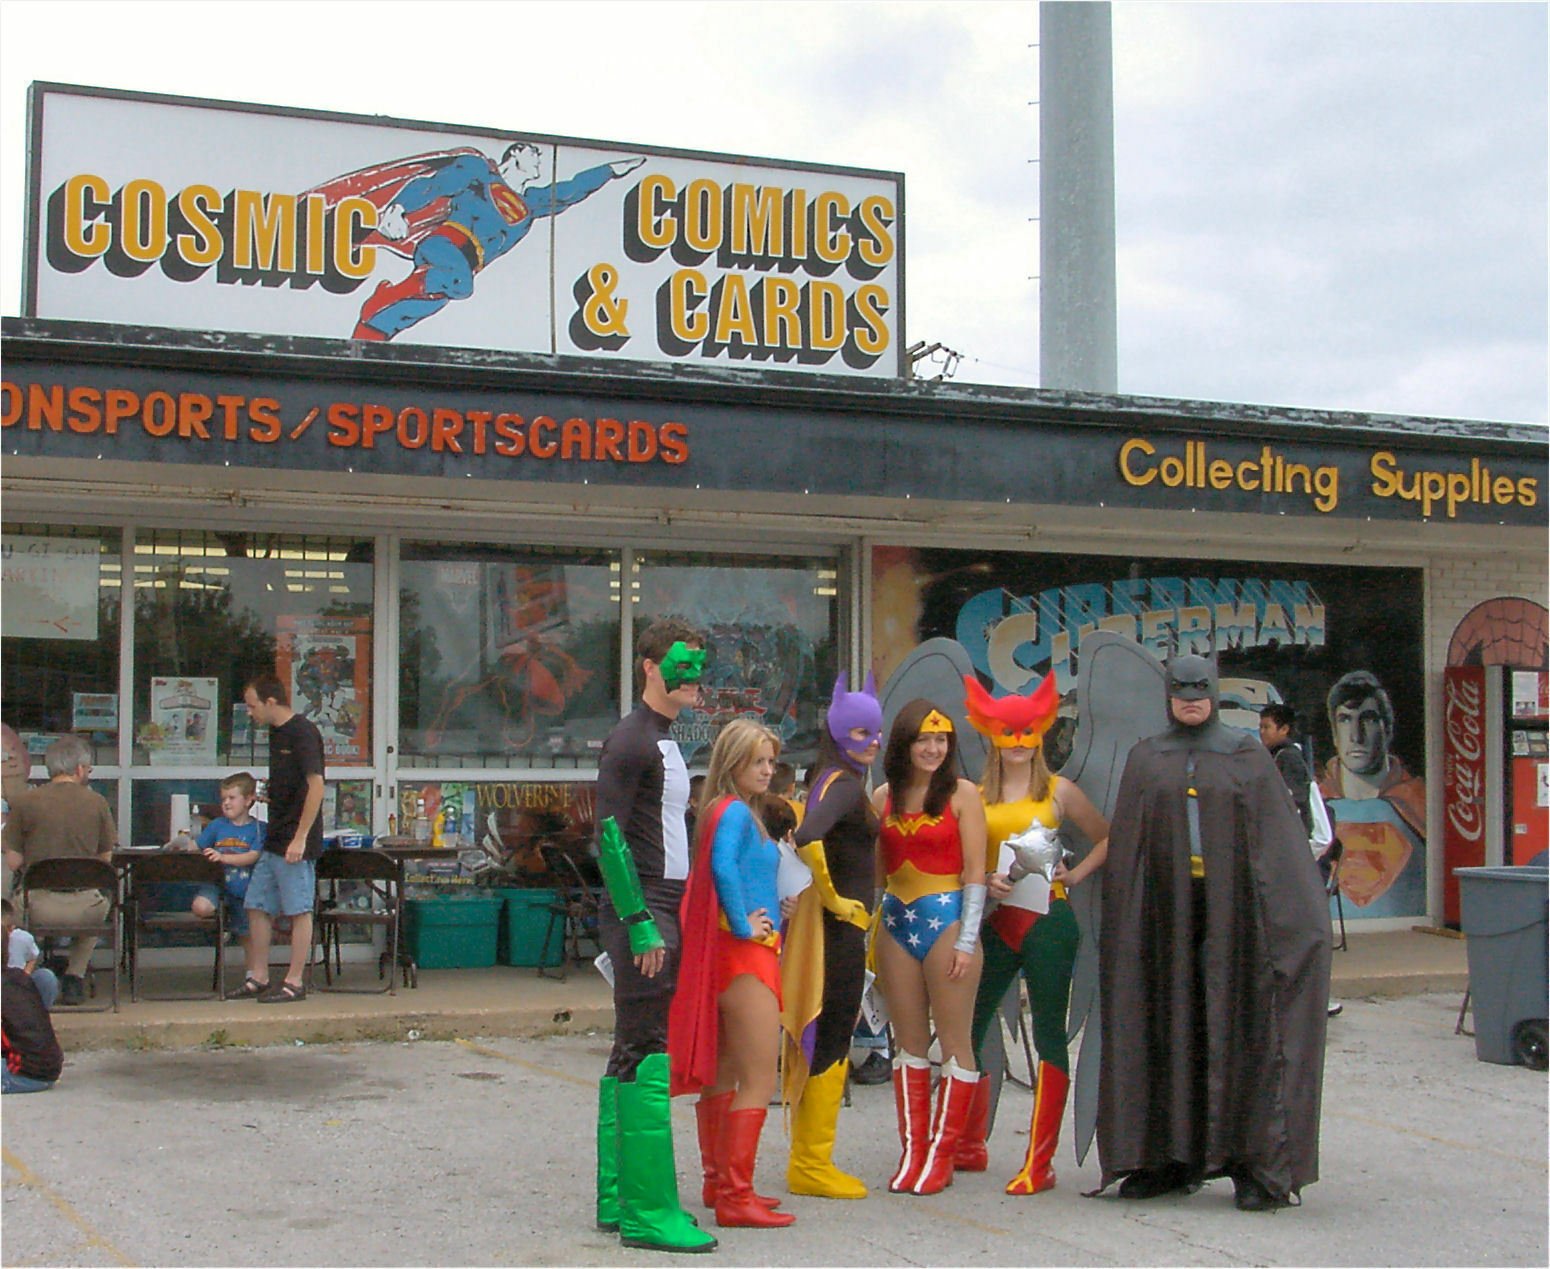 Cosmic Comics and Cards